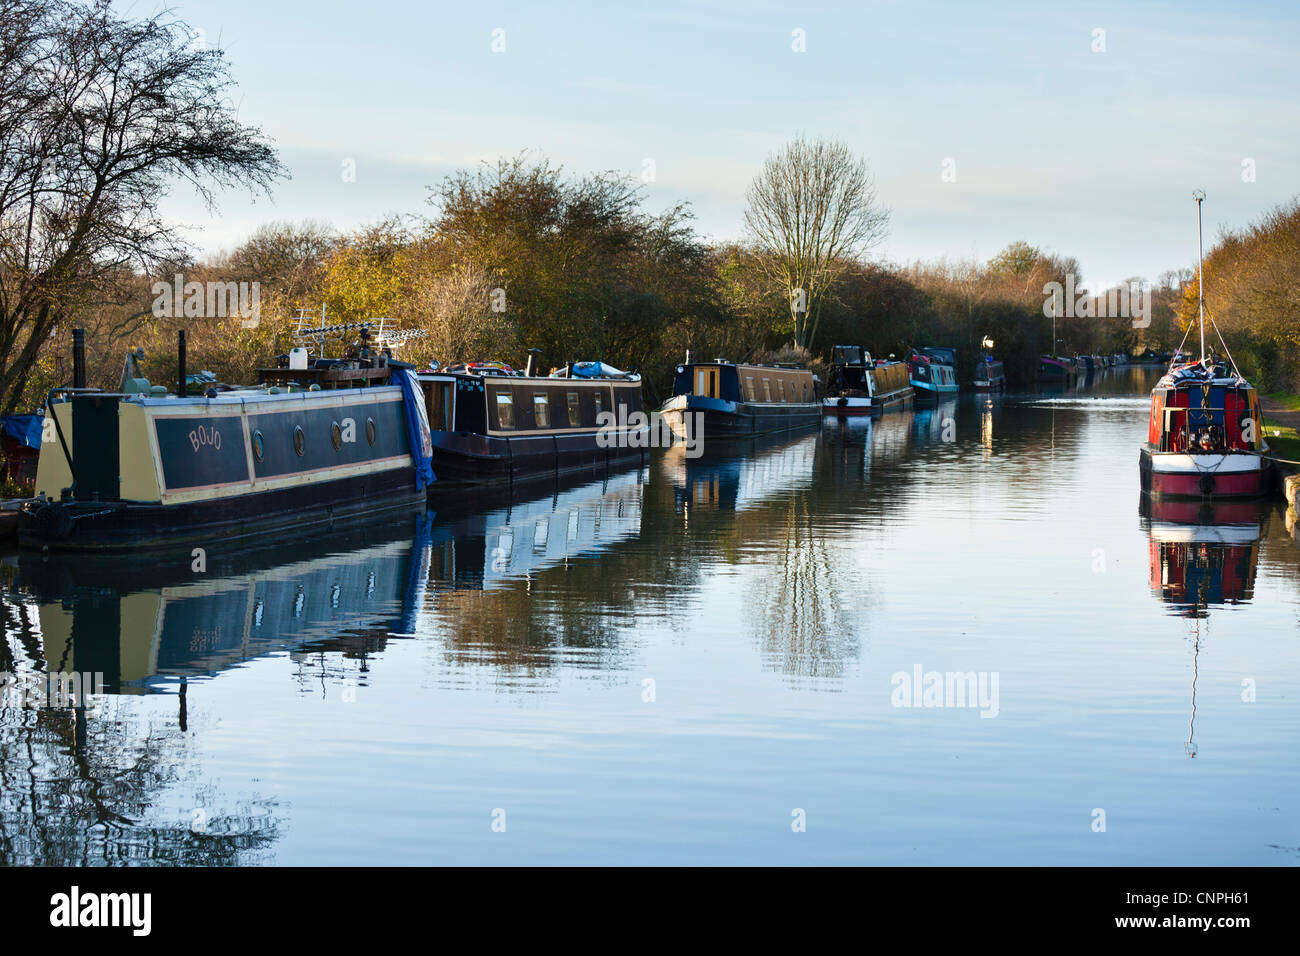 Canal boats moored on the Grand Union Canal near to Milton Keynes, UK. - Stock Image